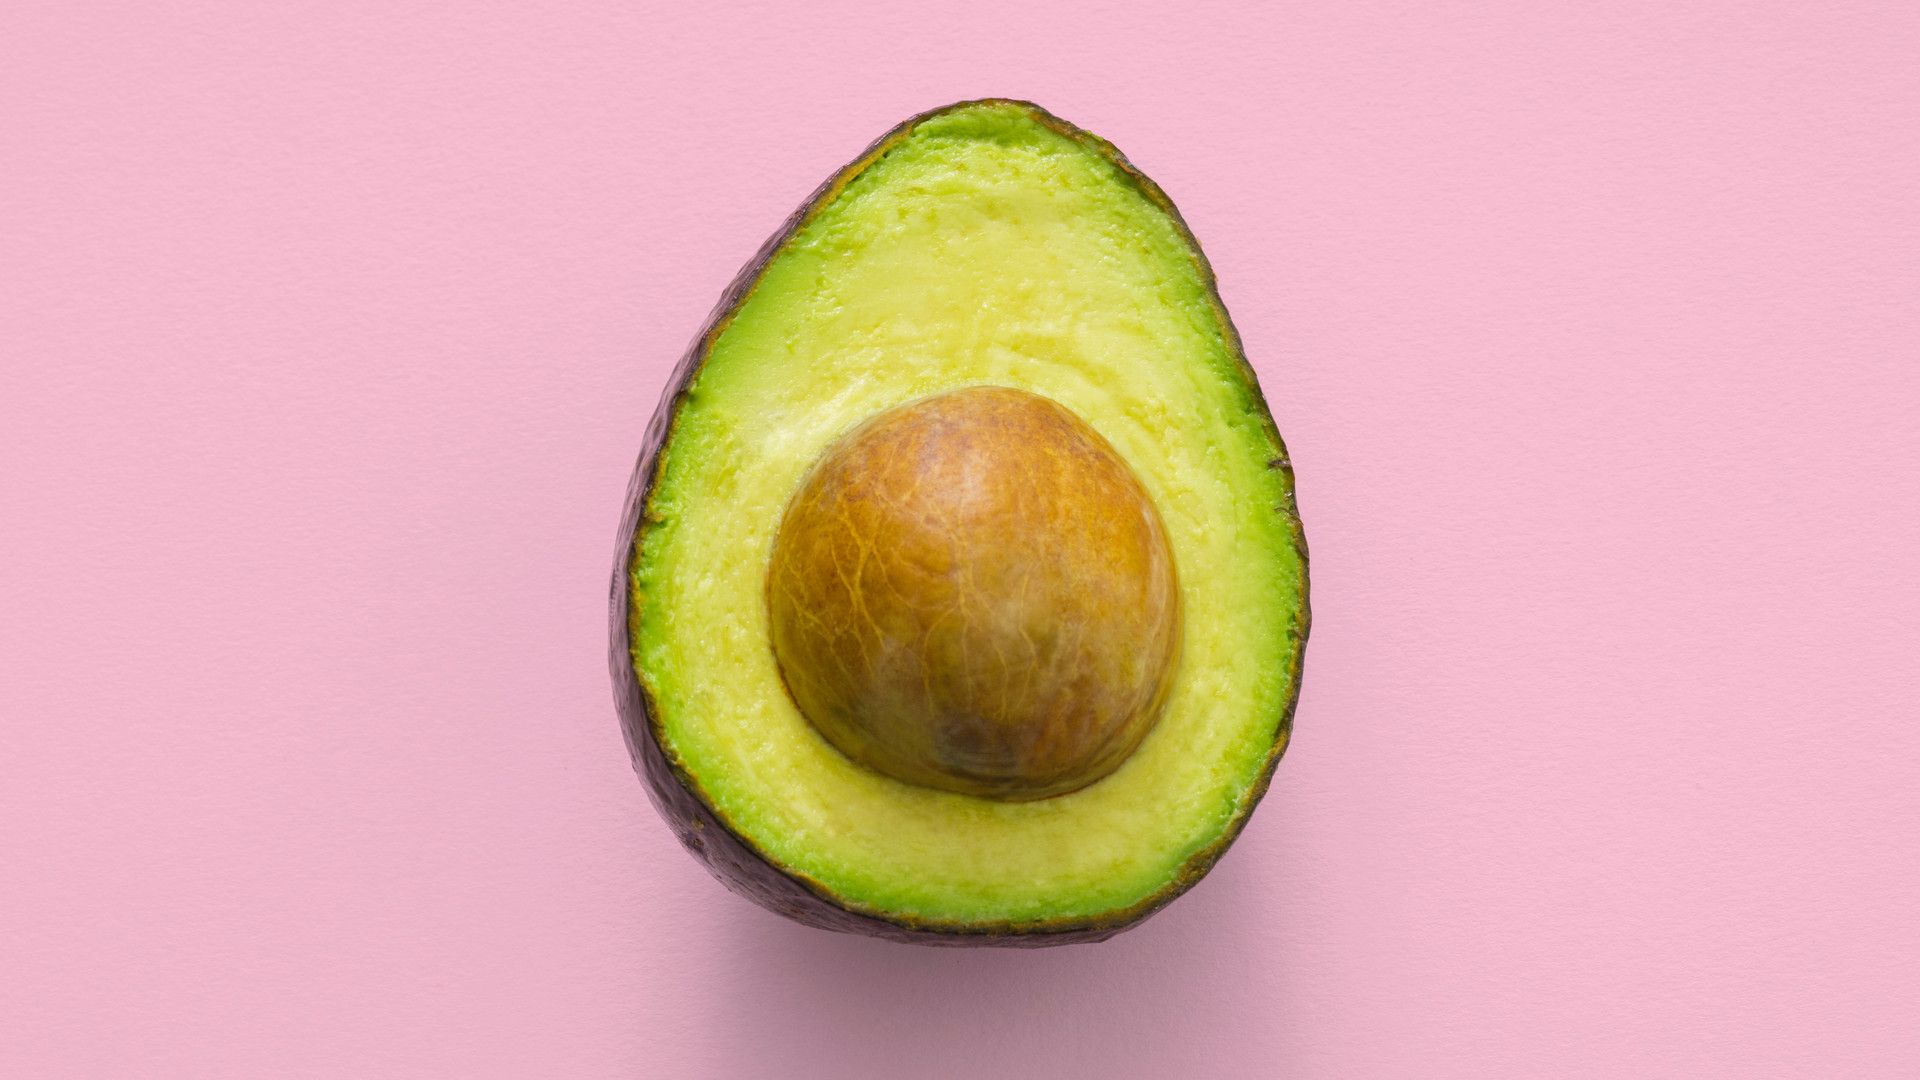 Avocado PC Wallpaper HD